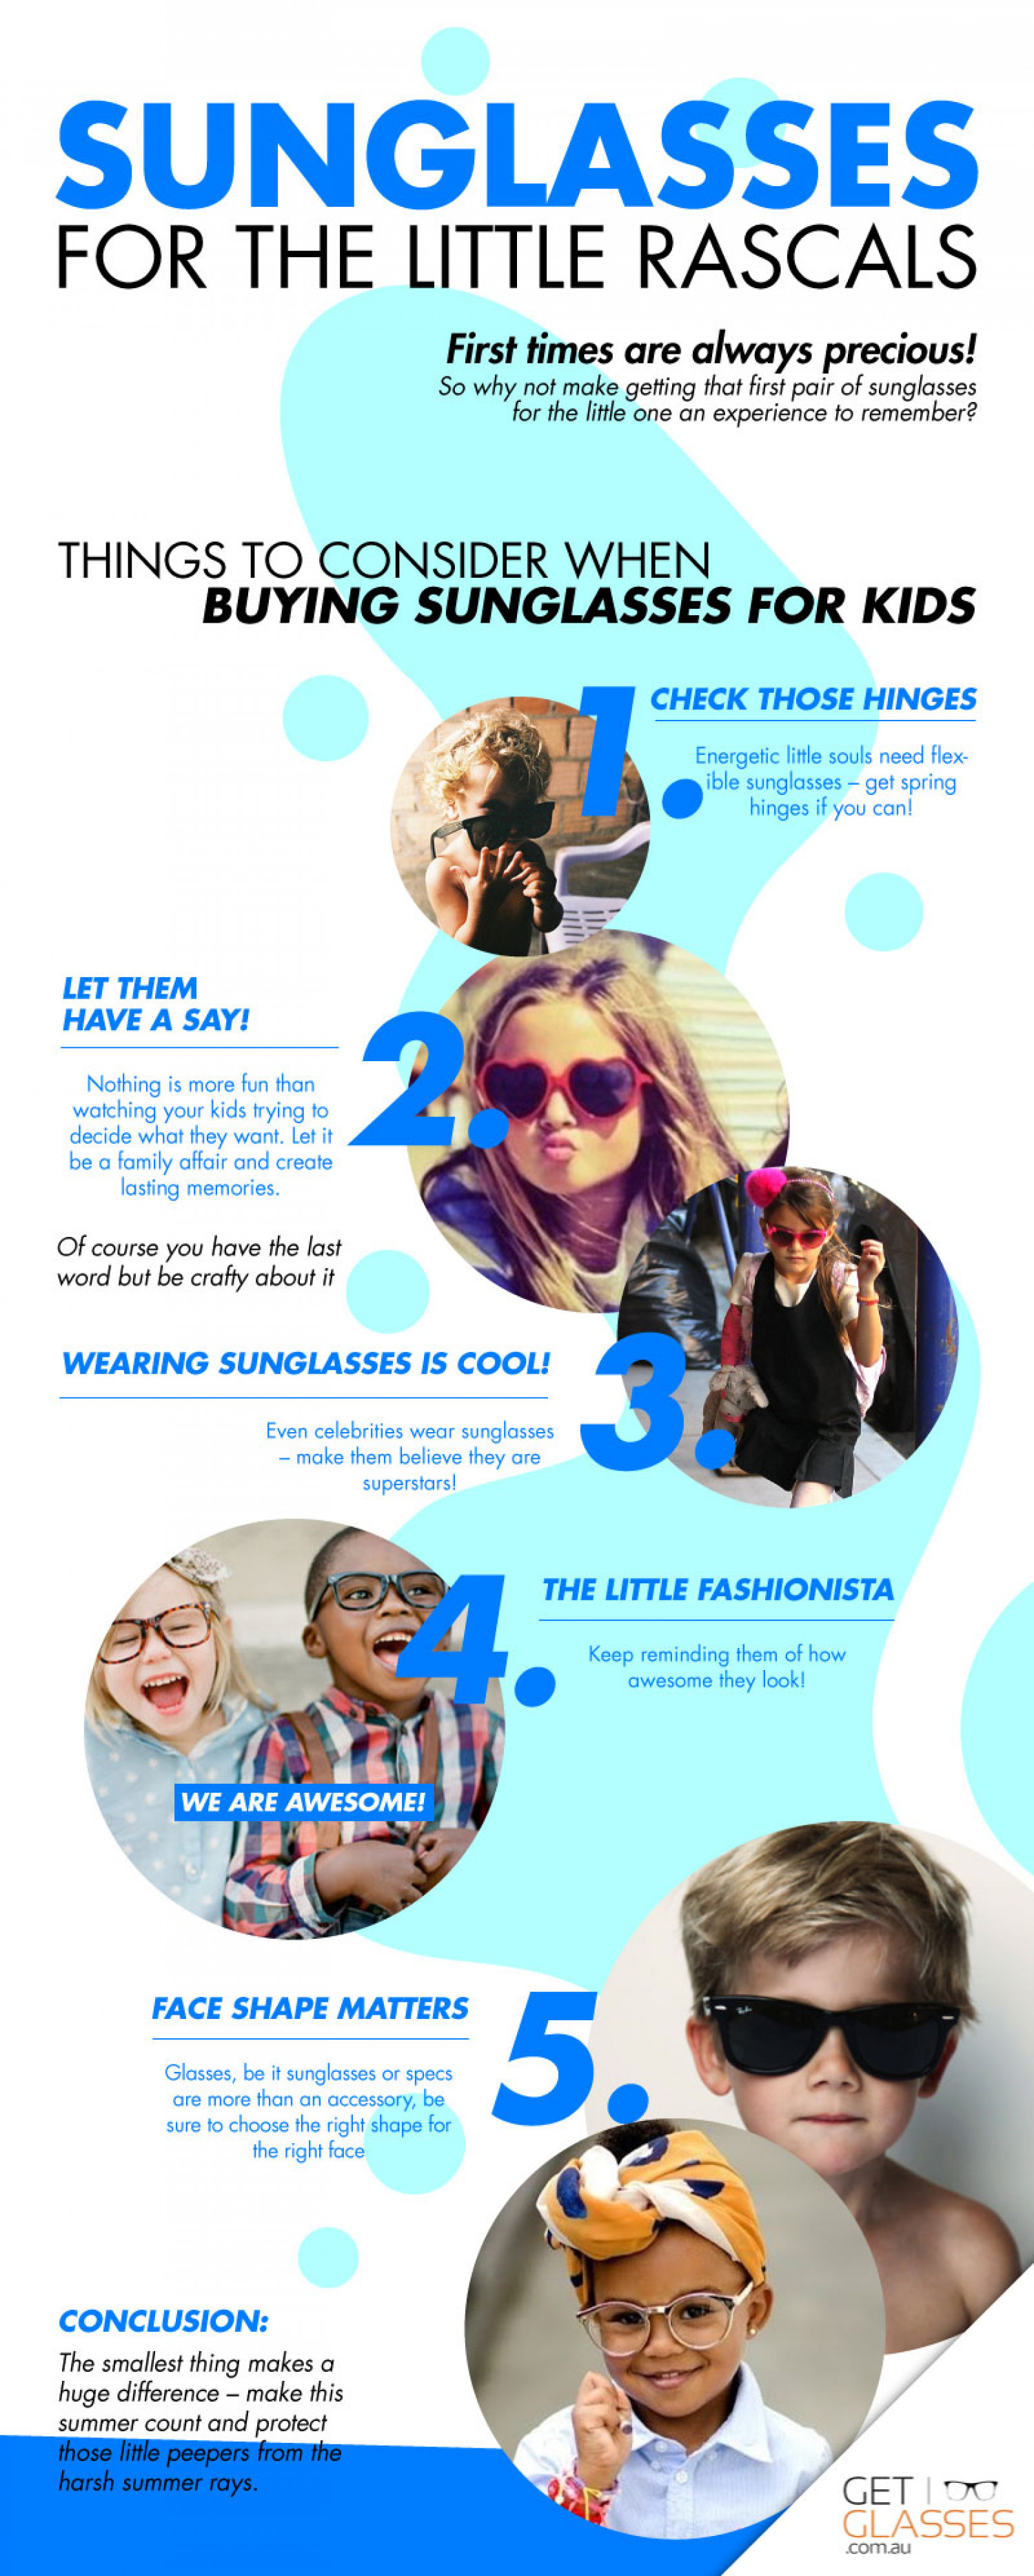 Sunglasses for the Little Rascals Infographic